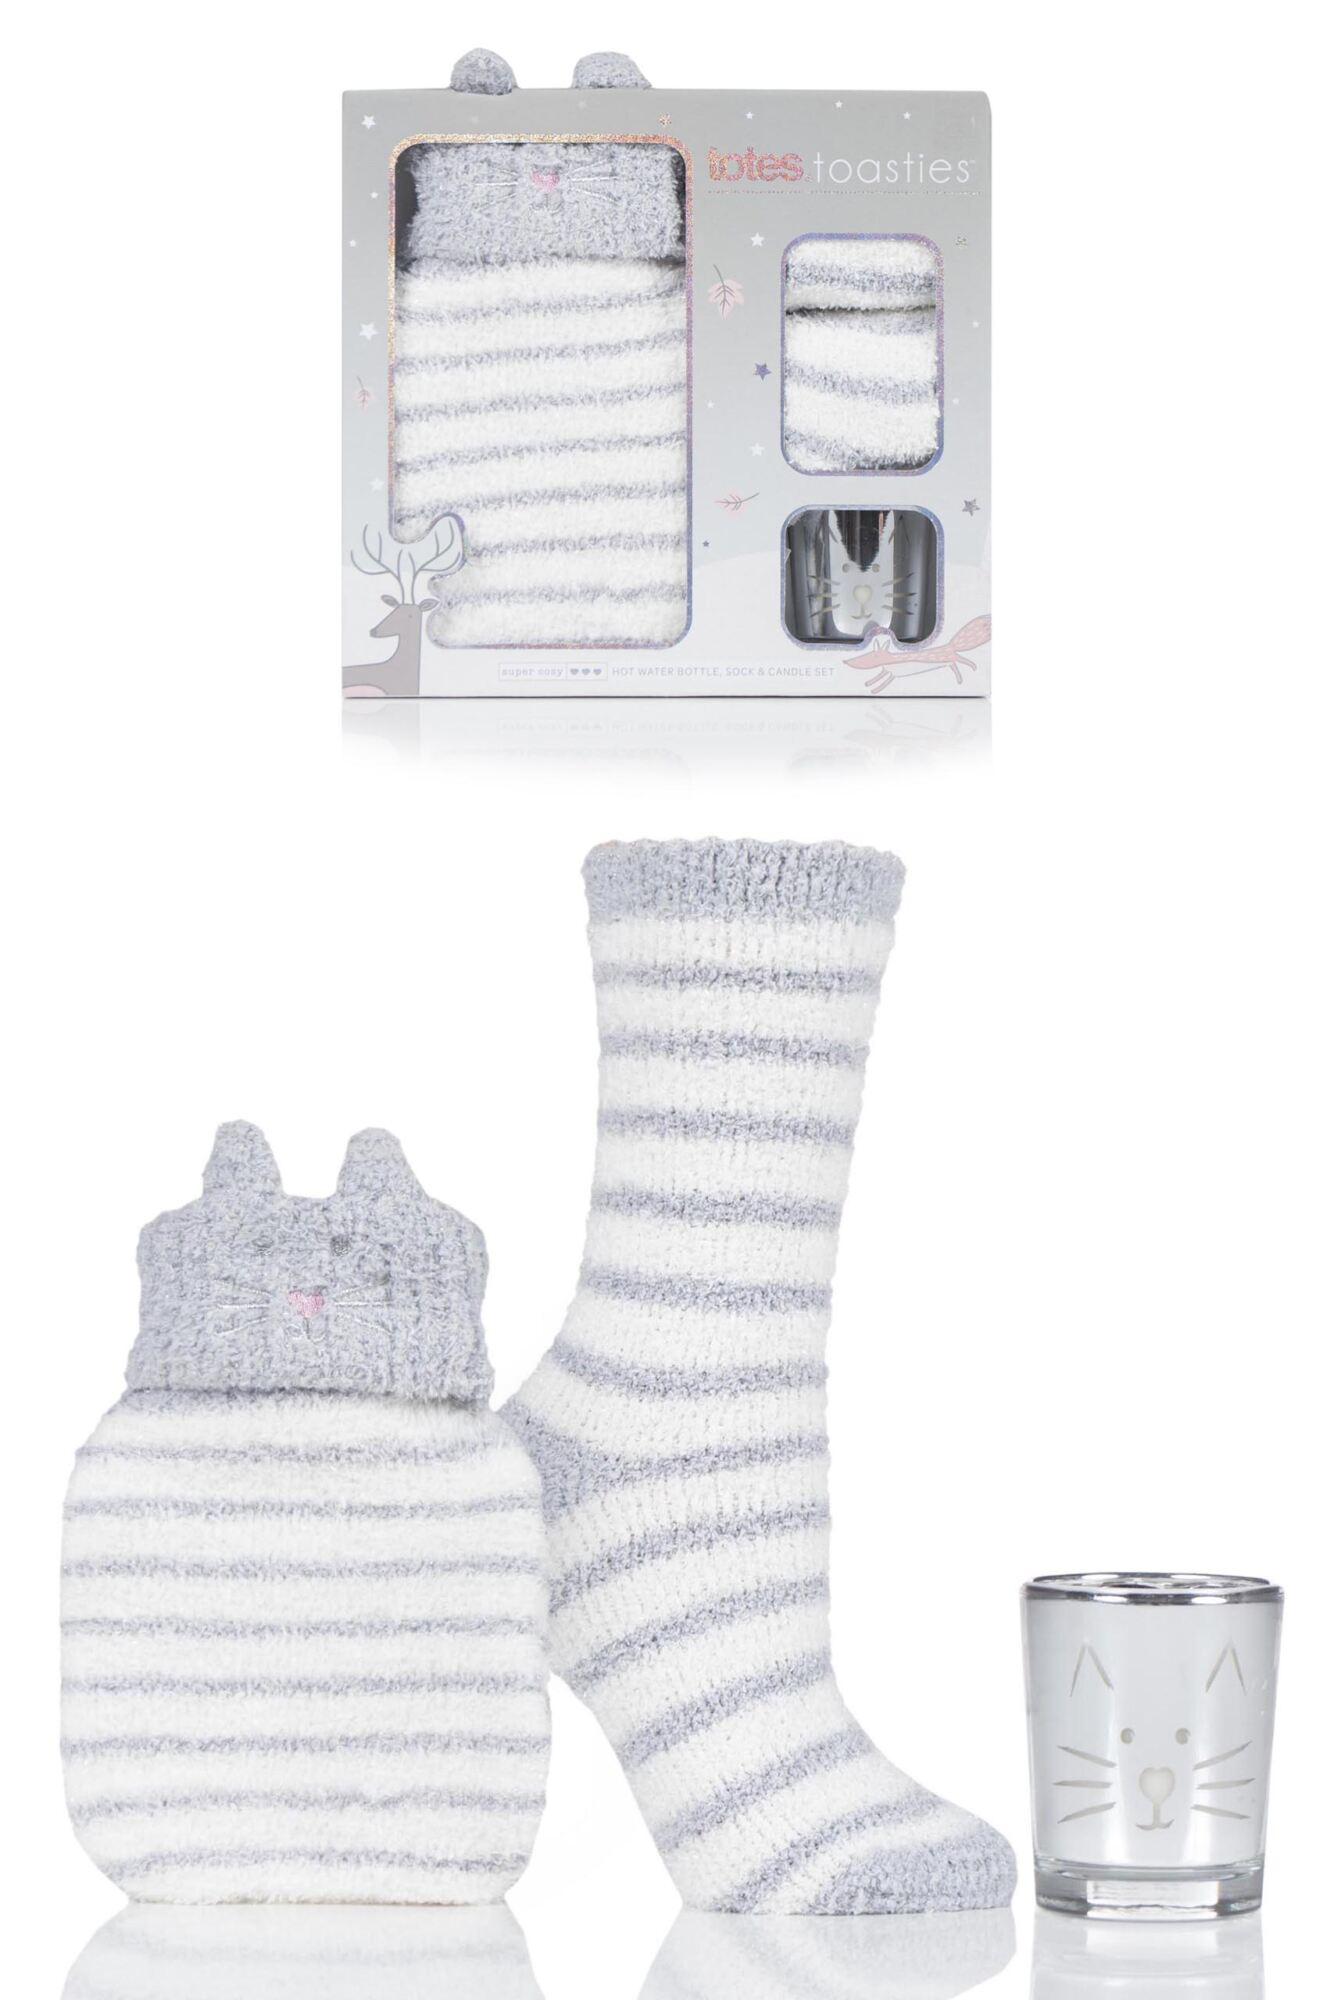 1 Pair Super Soft Bed Socks with Hot Water Bottle and Candle Gift Set Ladies - Totes